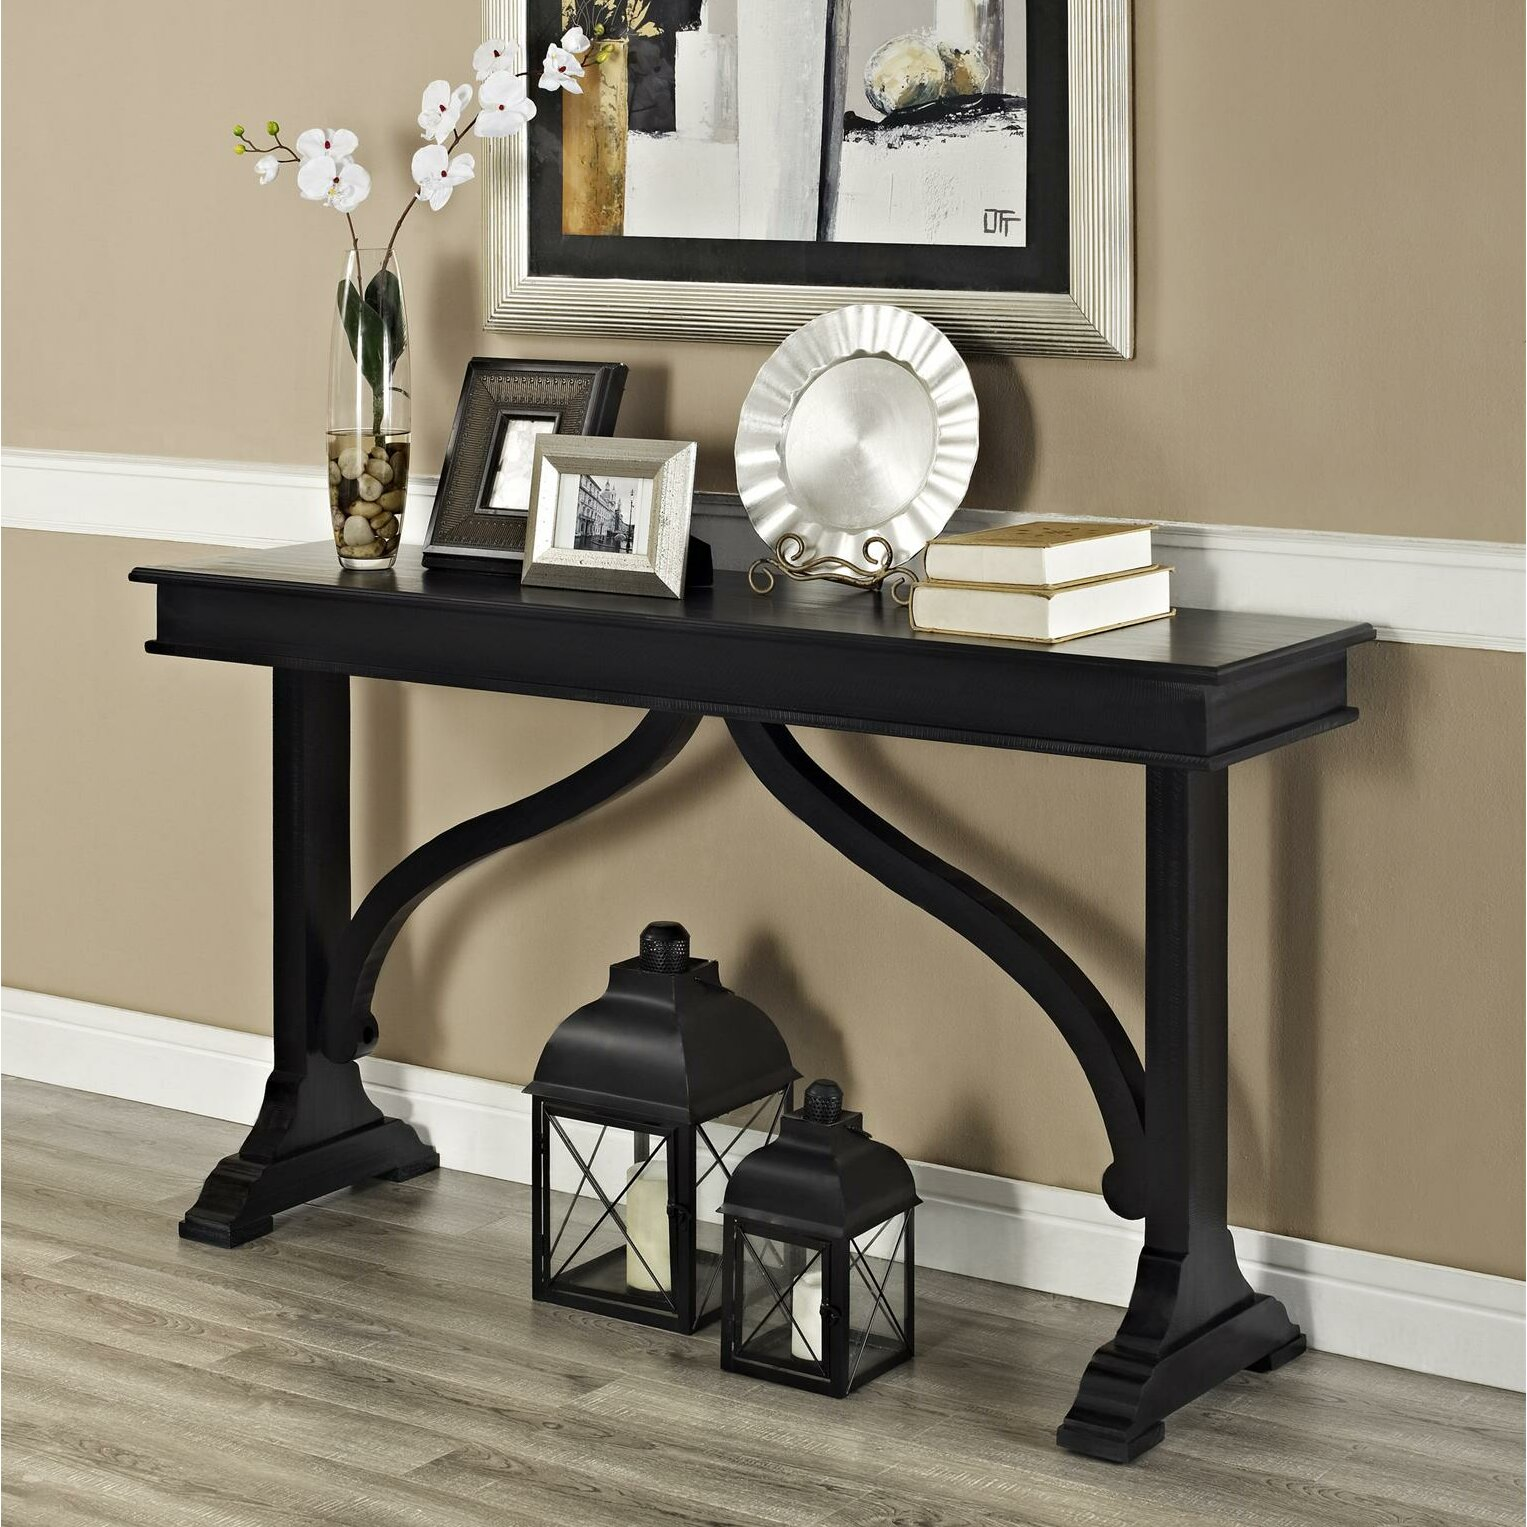 breakwater bay havelock console table reviews wayfair. Black Bedroom Furniture Sets. Home Design Ideas